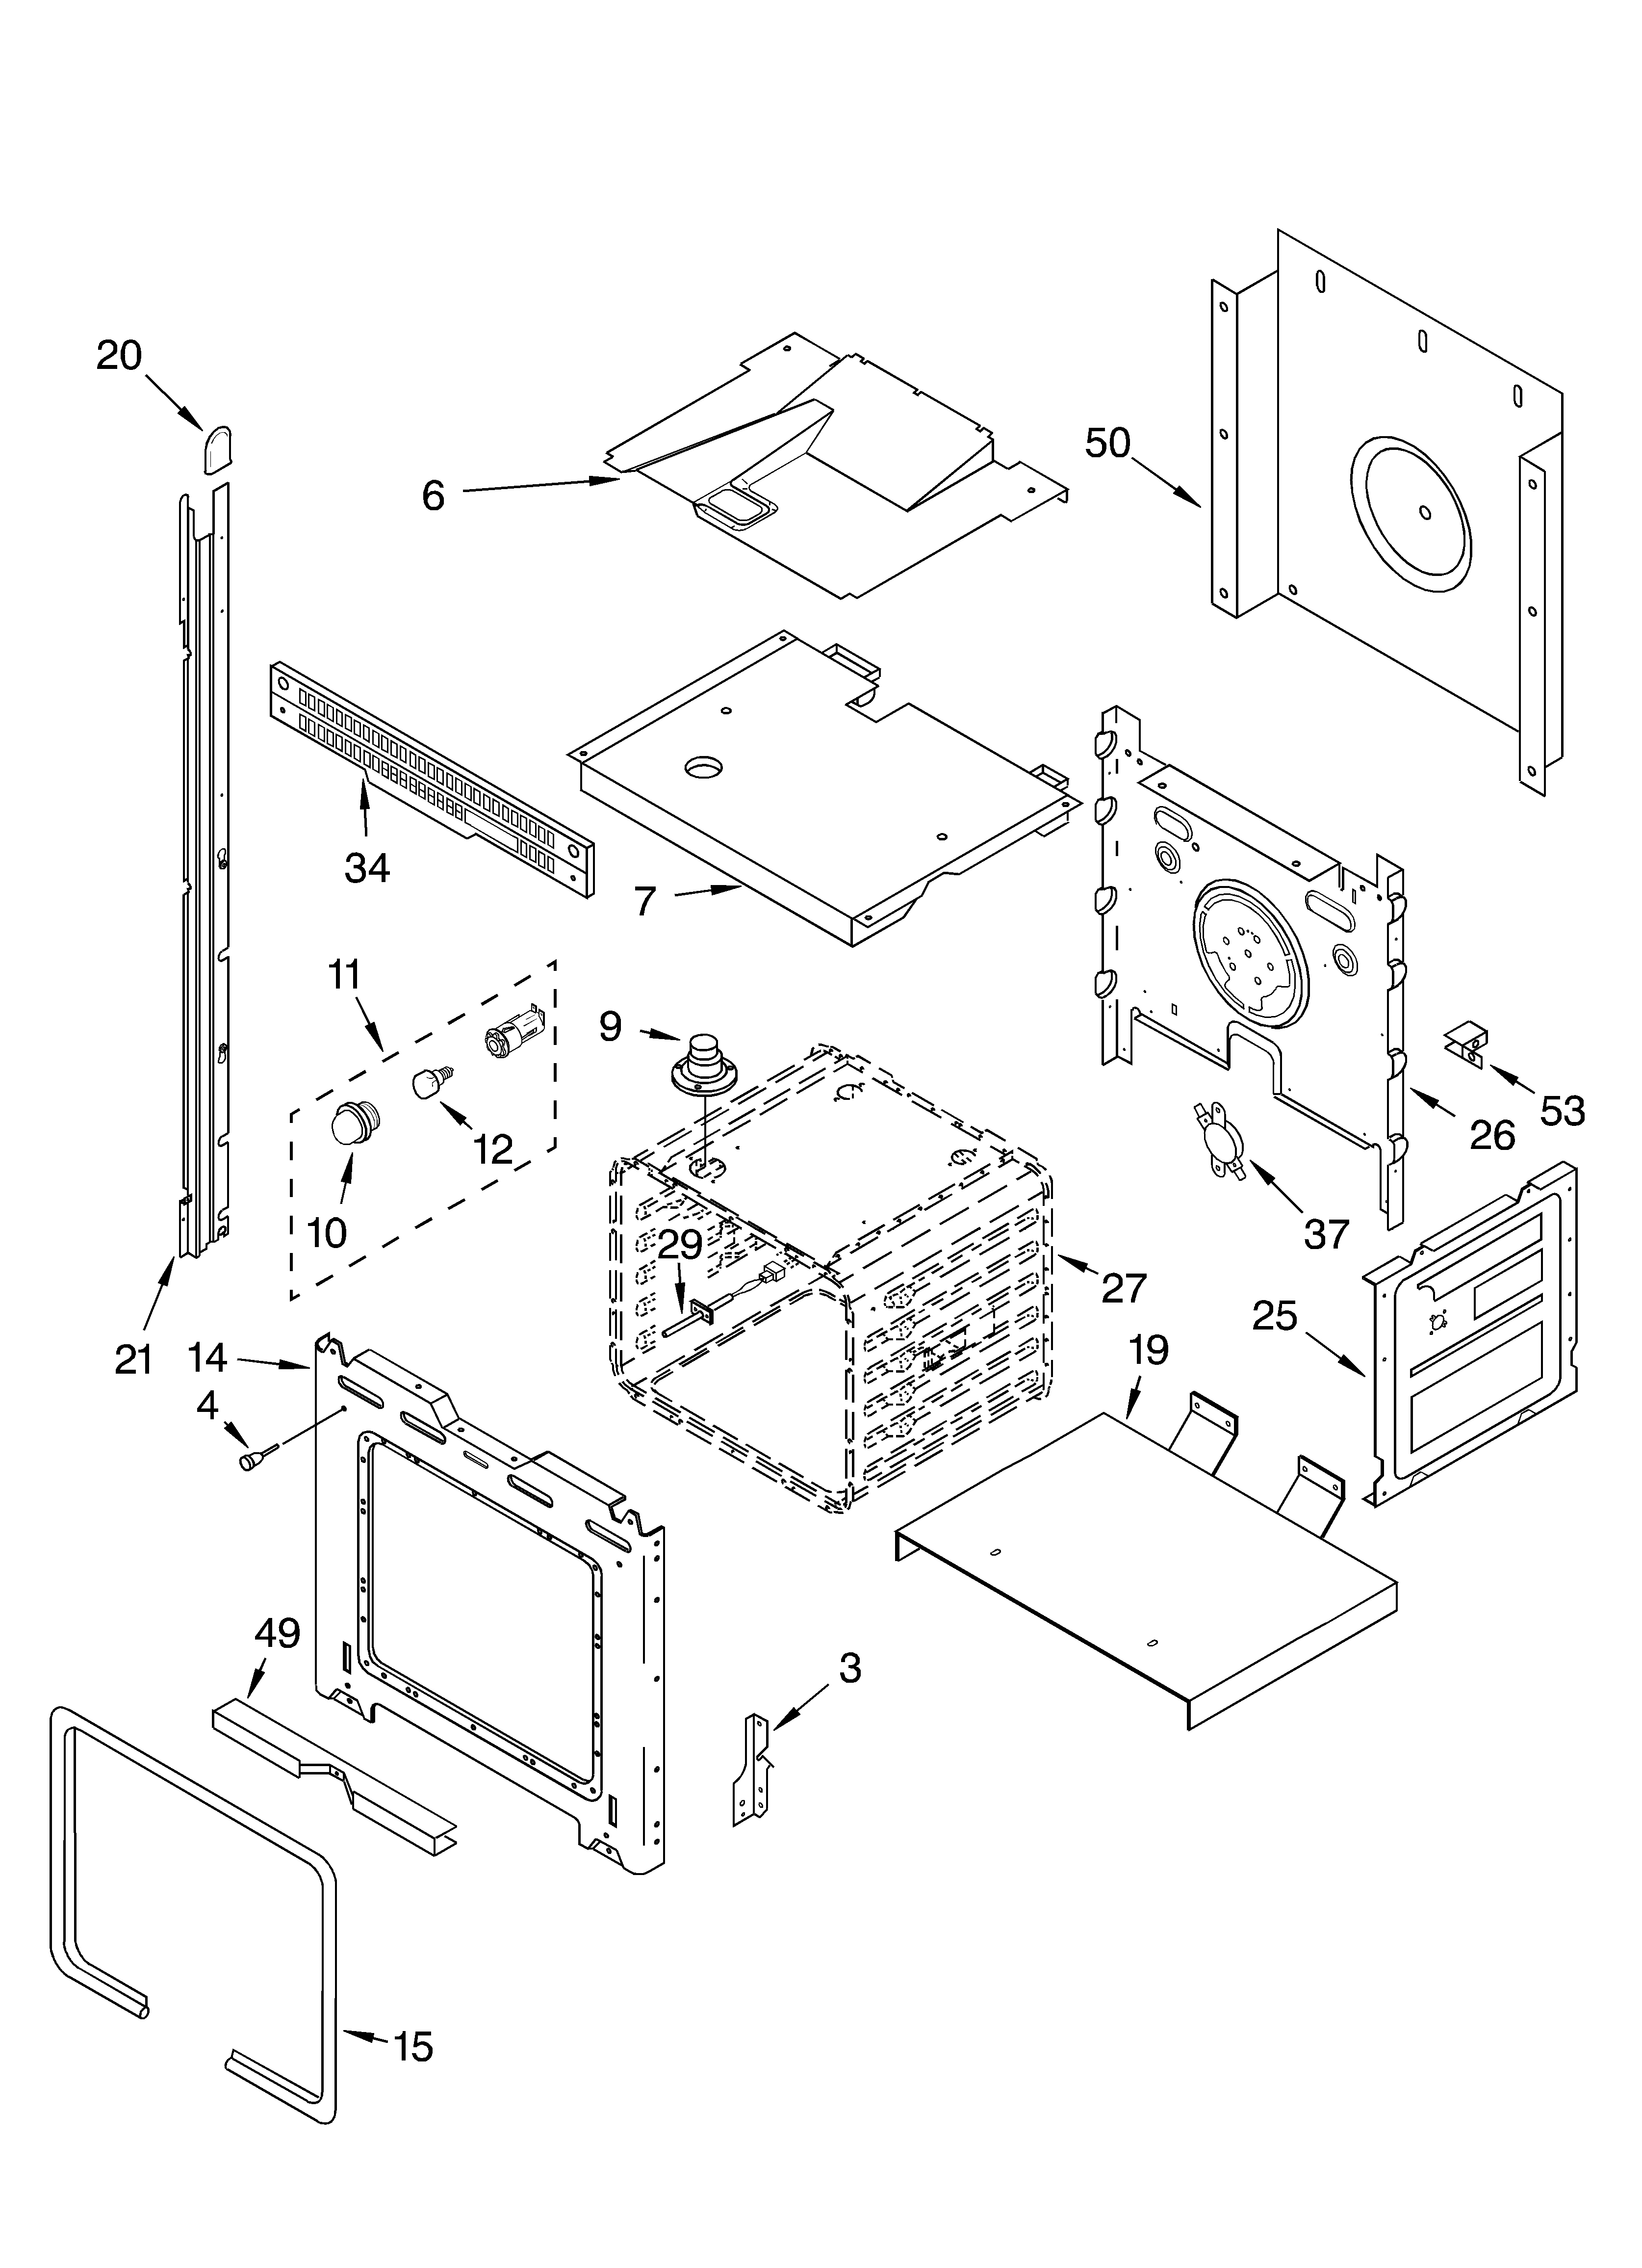 Hardinge Lathe Parts Diagram together with Electronic Schematic For Whirlpool Oven moreover A 65 Wiring Diagram Capacitor Bank together with 12 Volt Blower Motor Brushes furthermore Rc Carpet Oval Race Cars. on s 1025258